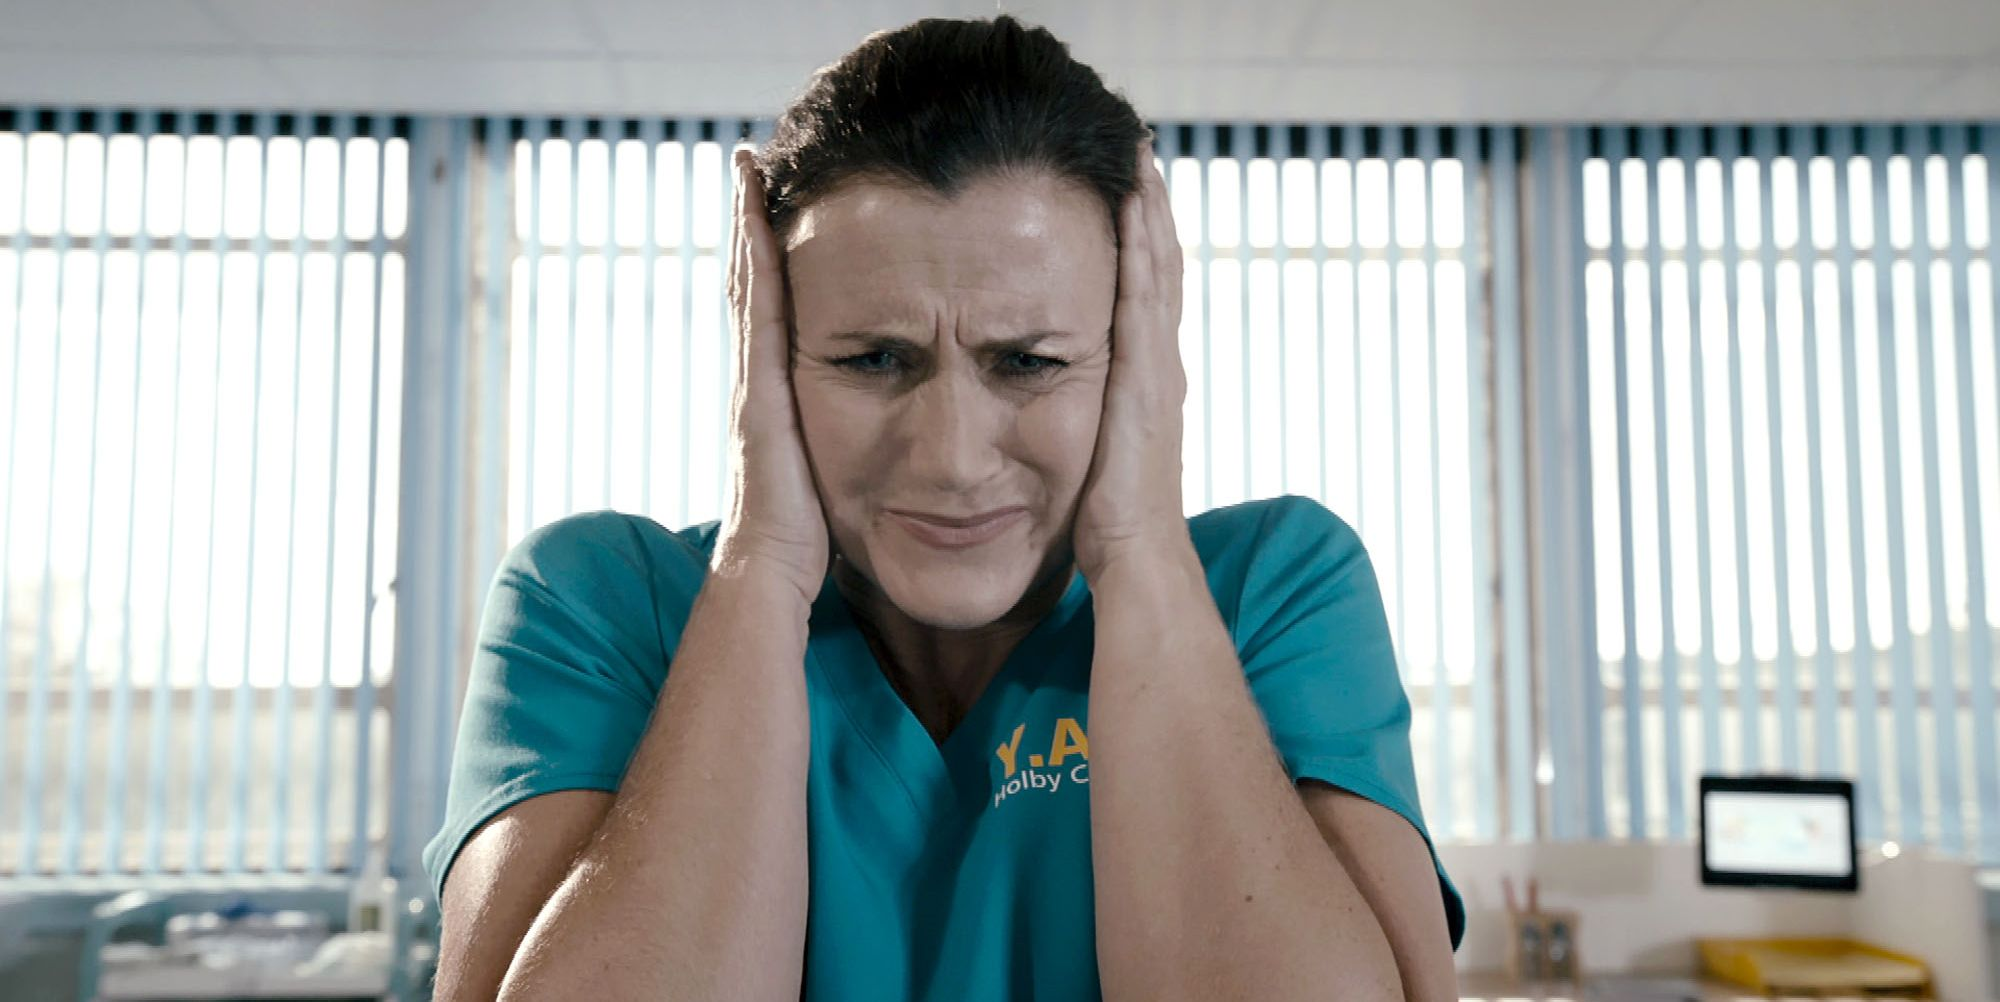 Ange Goard in Holby City